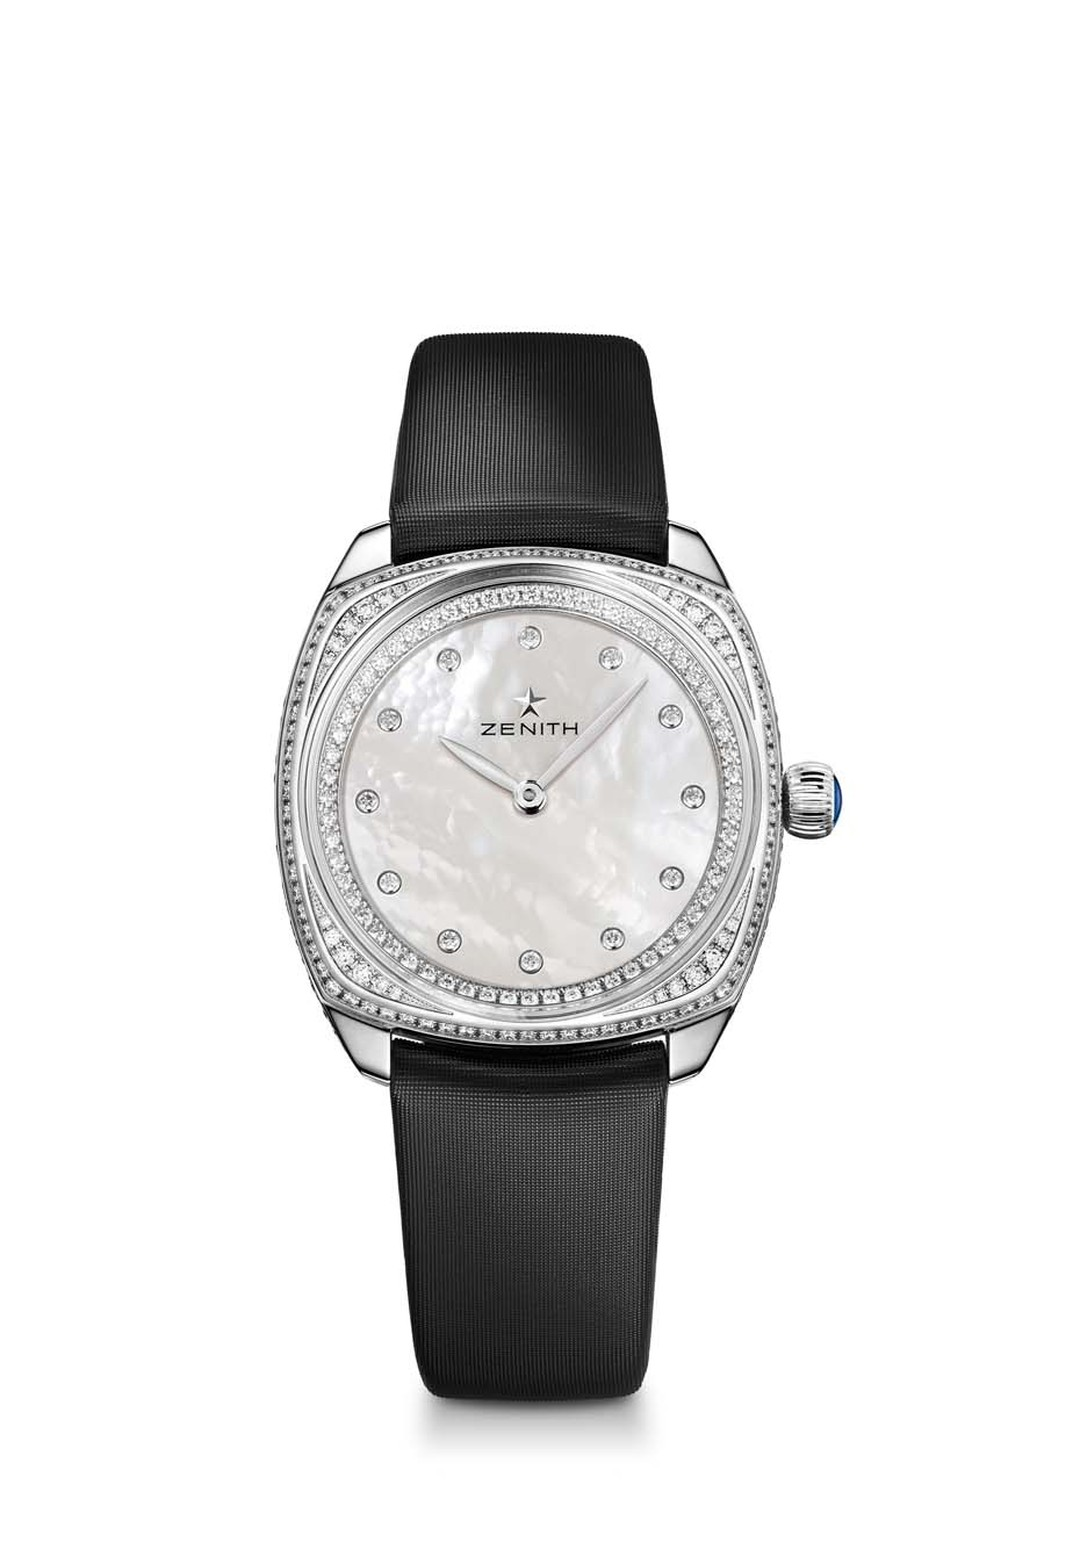 Taking the carat weight up a notch, with 72 brilliant-cut diamonds on the dial, 104 on the bezel and a further 42 on the buckle, the new 33mm Zenith Star watch in white gold will light up your most glamorous nights.